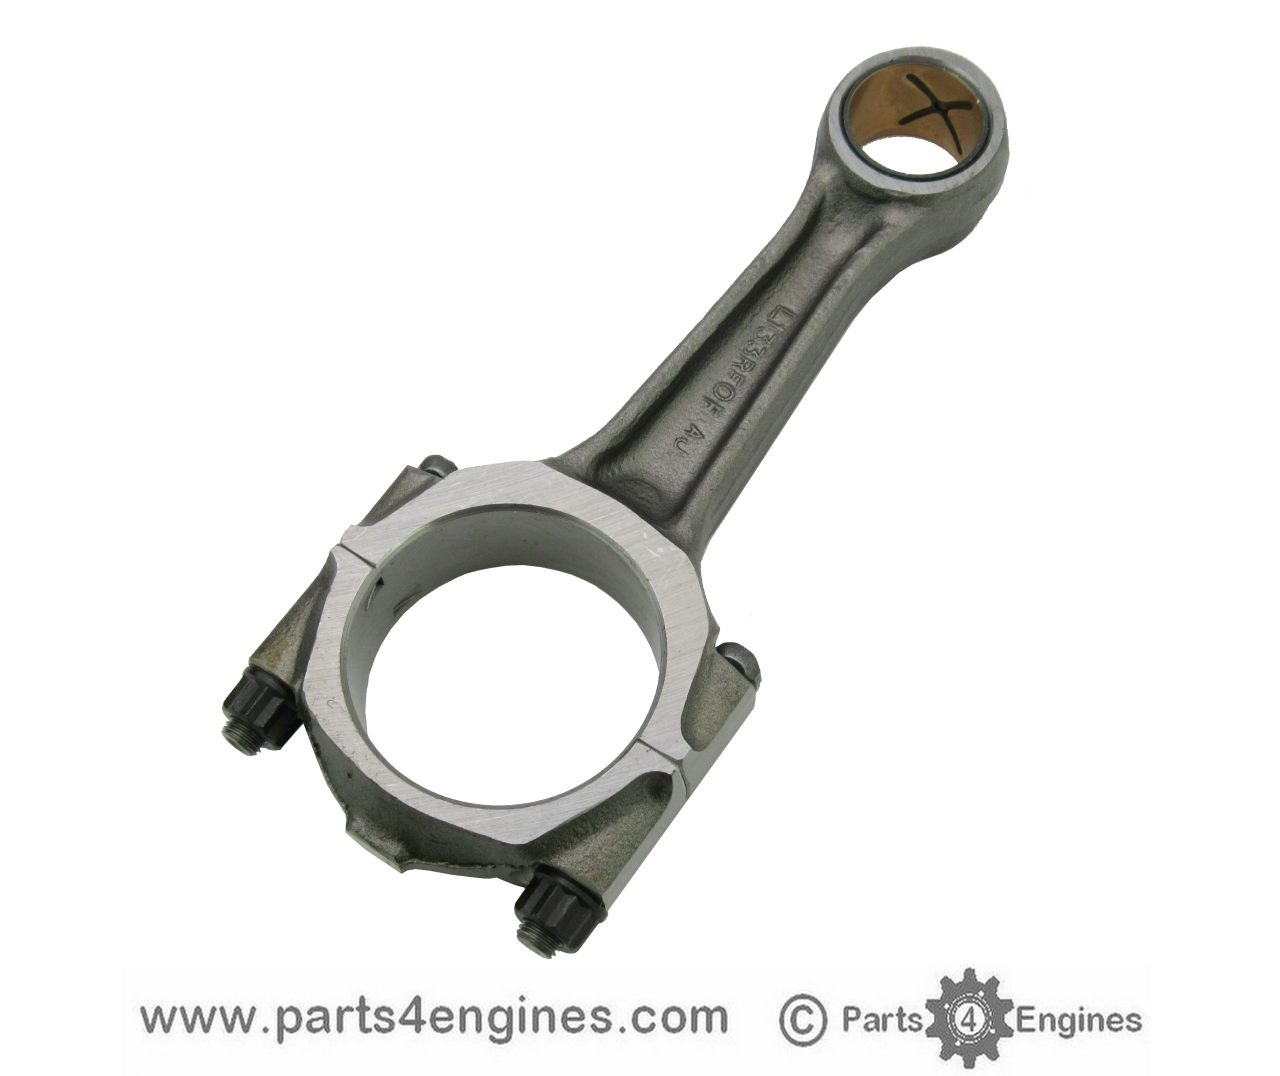 Perkins Prima M80T  Connecting rod, from parts4engines.com